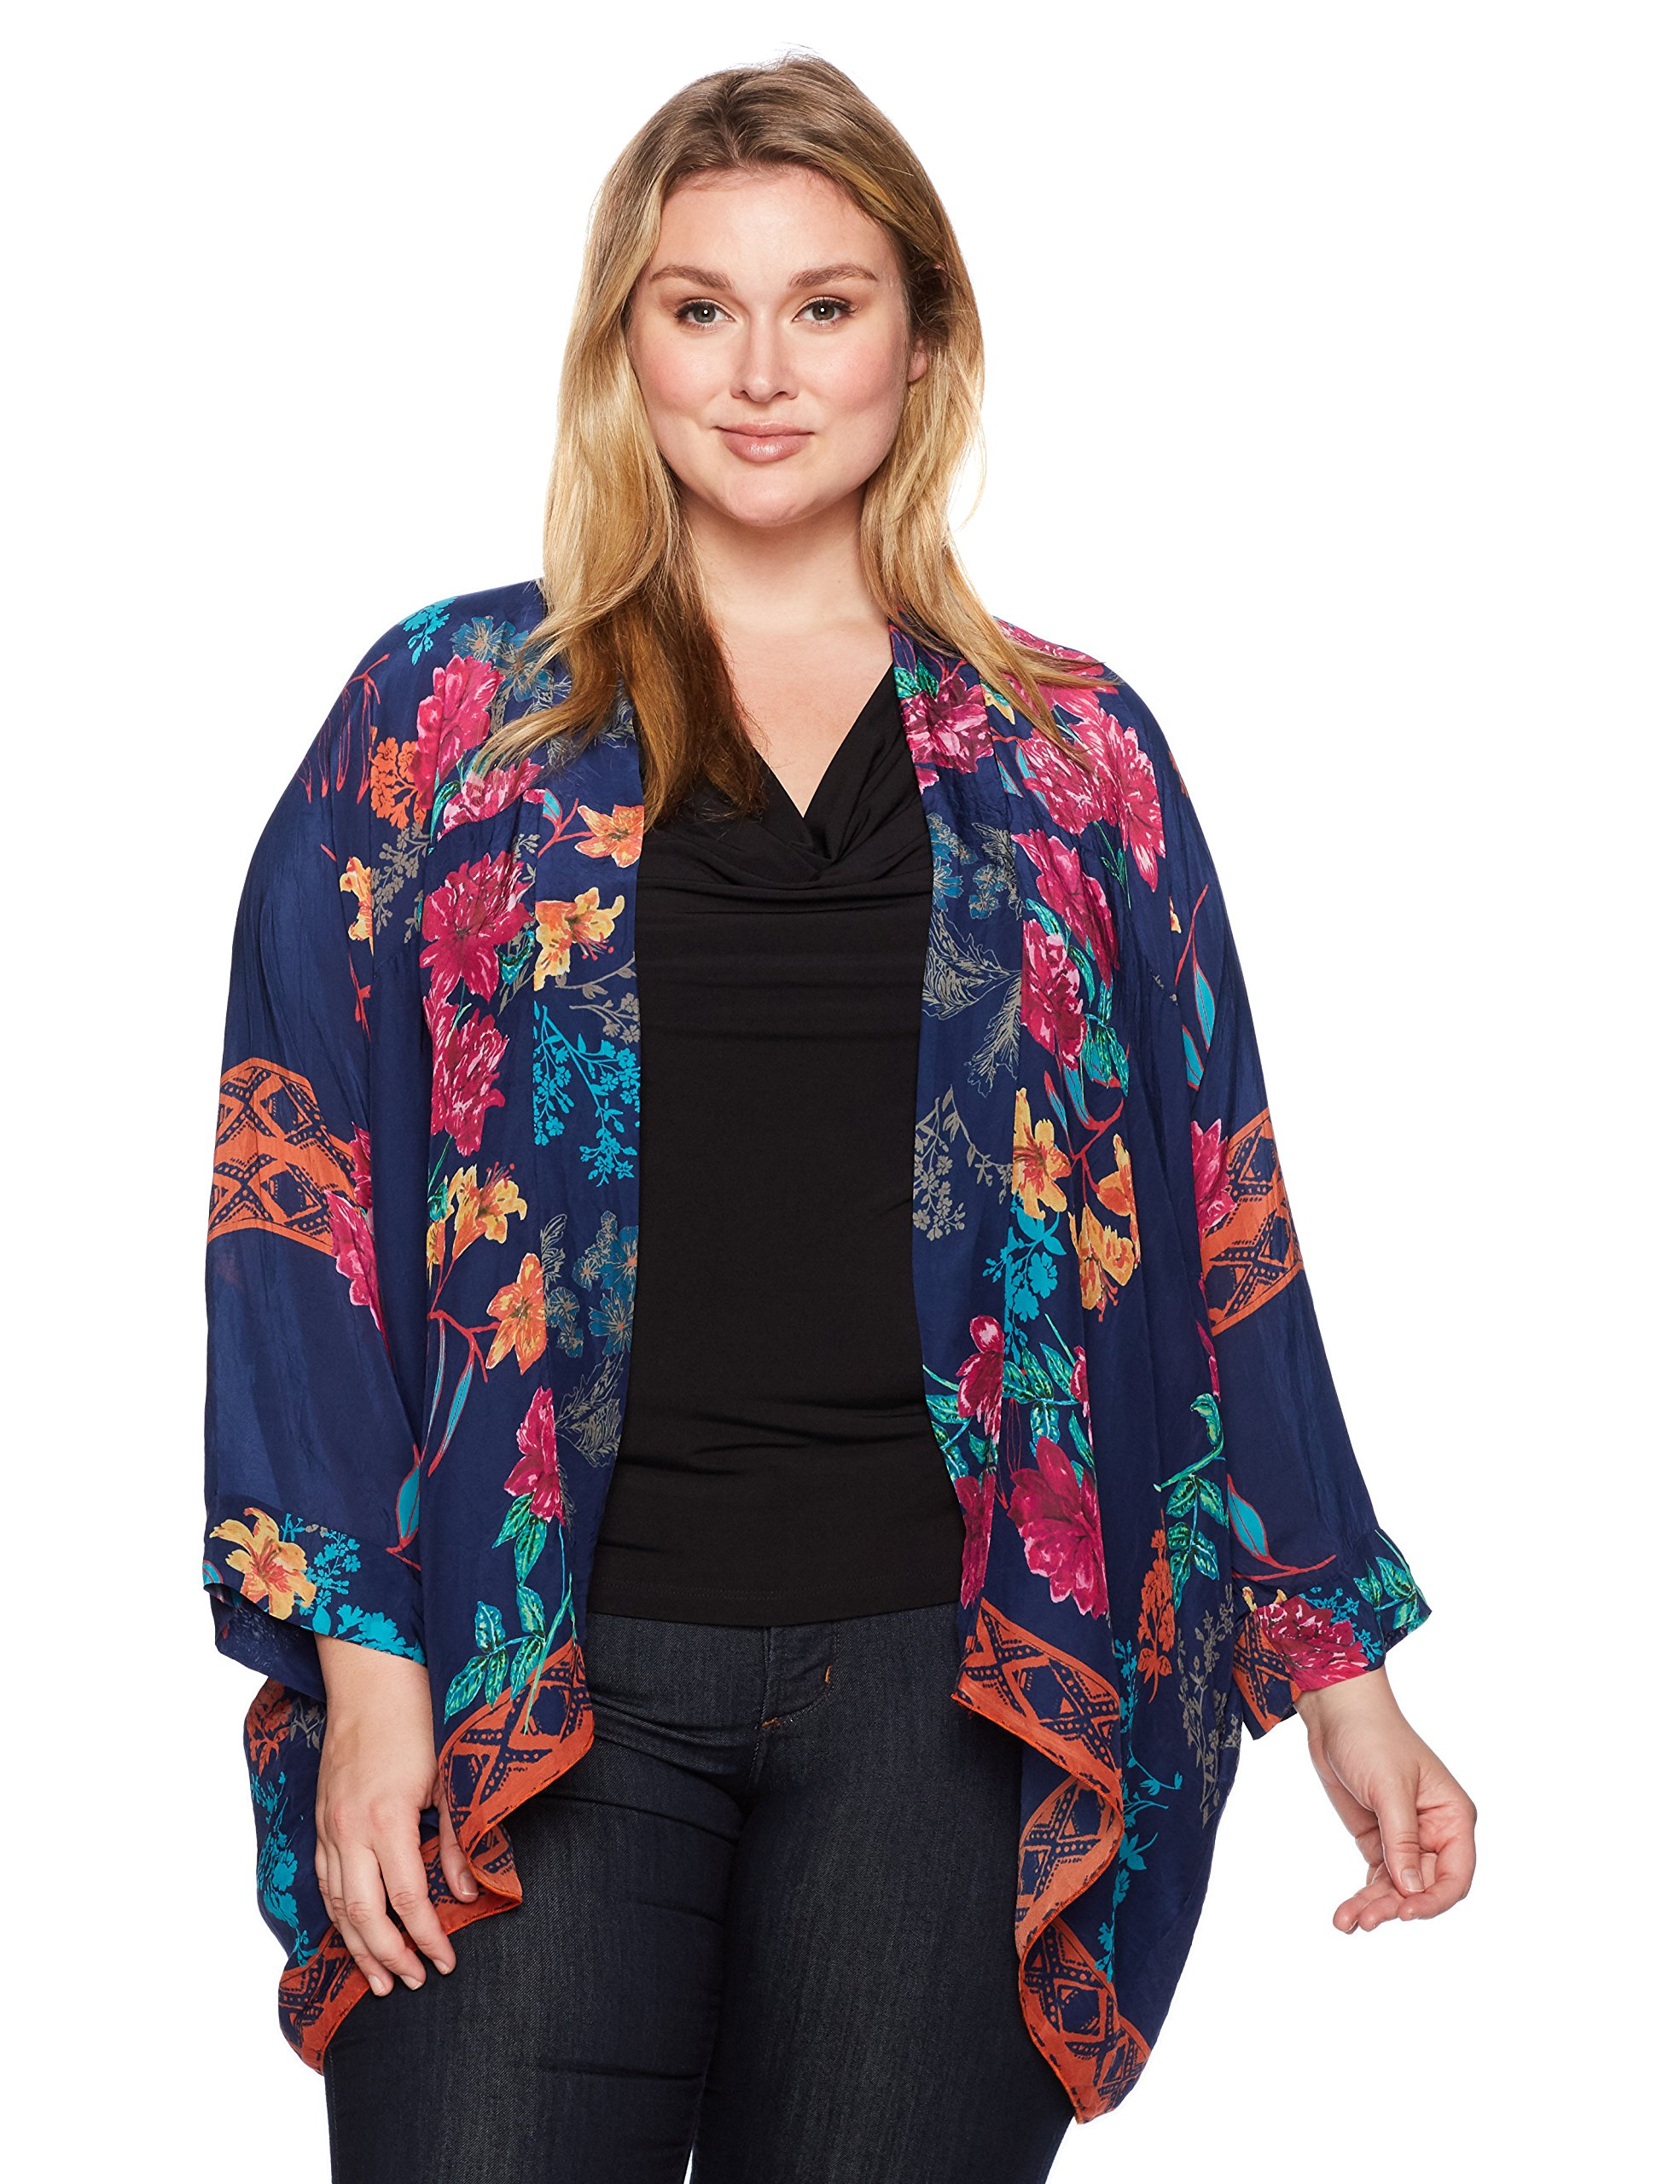 Johnny Was Women's Plus Size Wilimina Kimono, Multi/b, 1X by Johnny Was